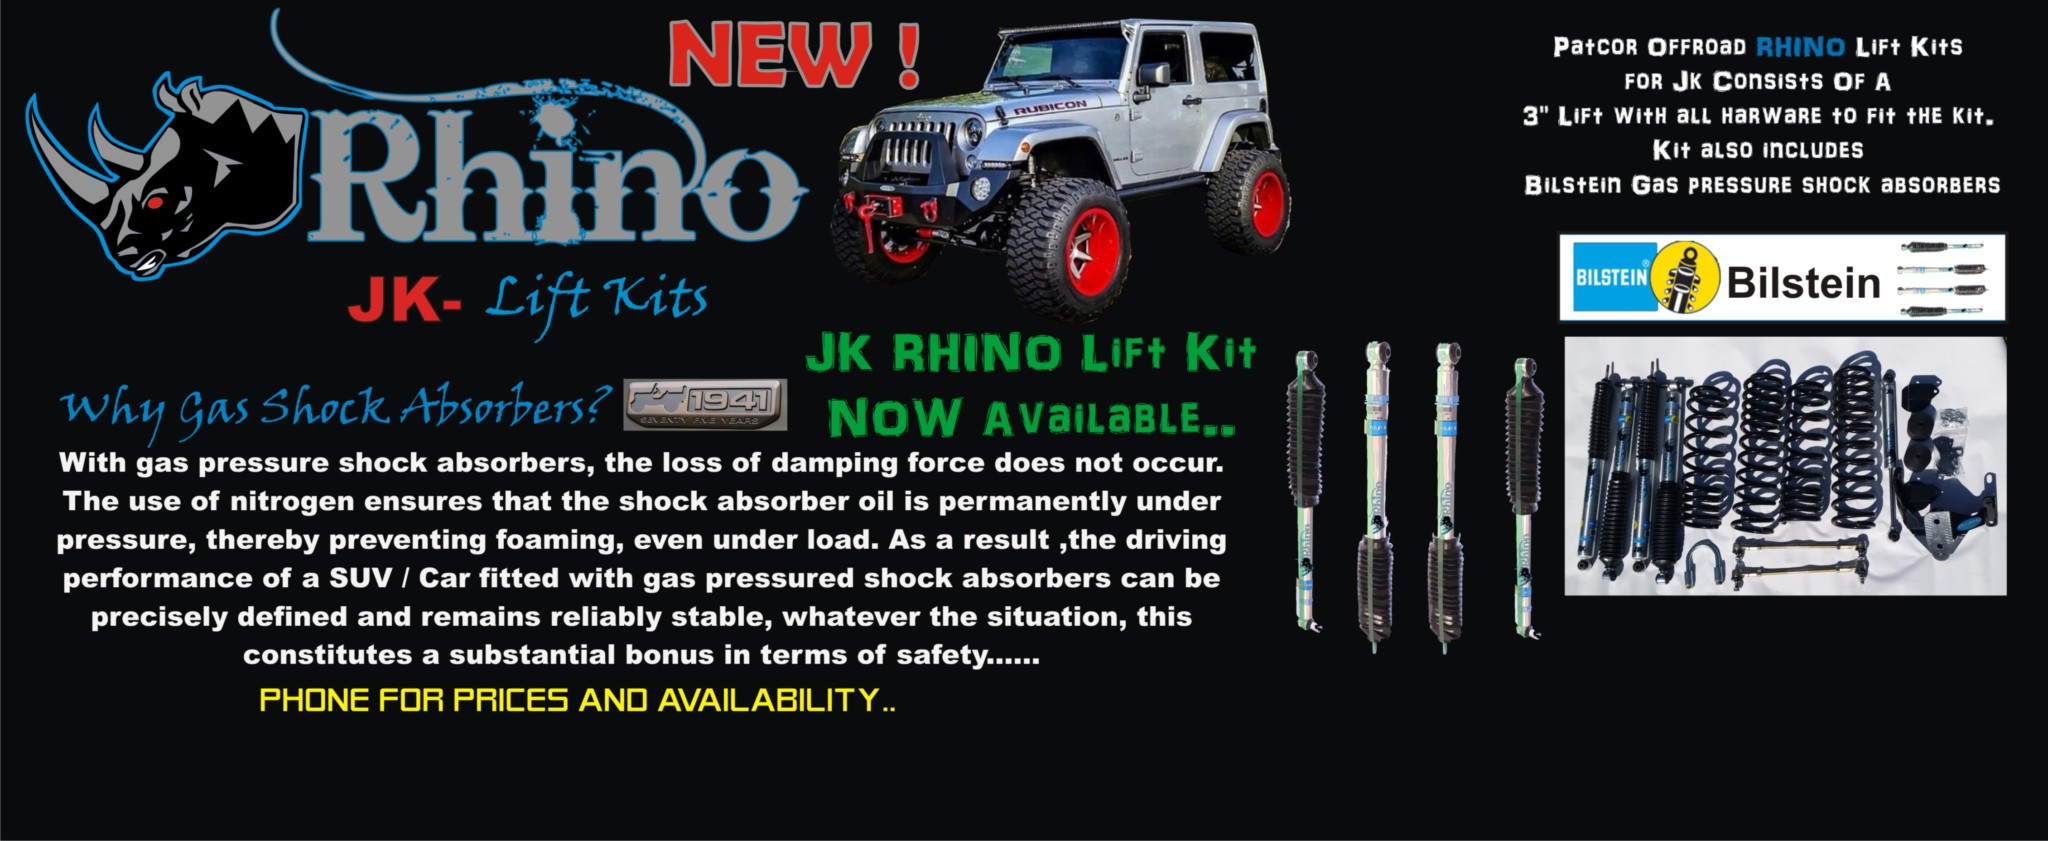 Patcor Offroad Jeep Parts And Accessories